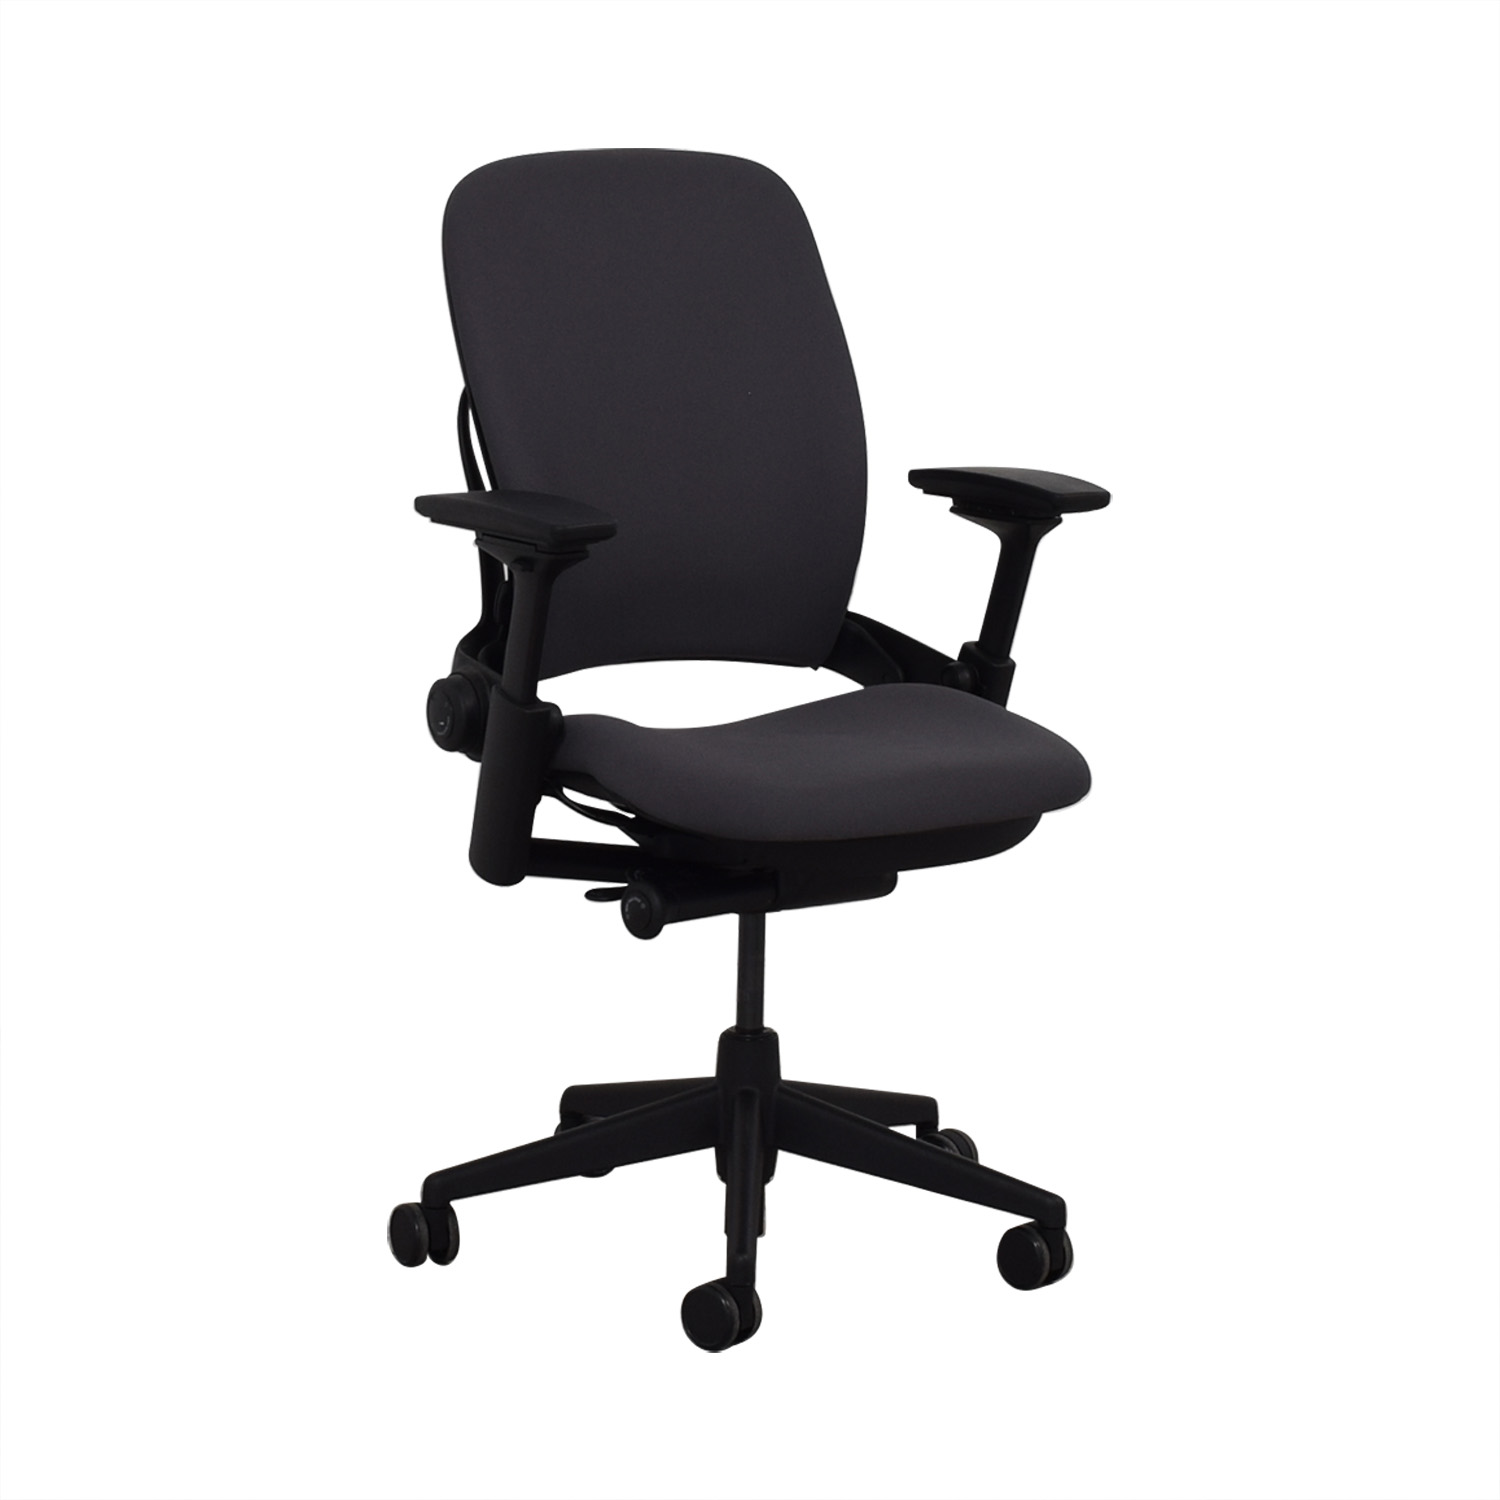 Steelcase Steelcase Leap V2 Office Chair price